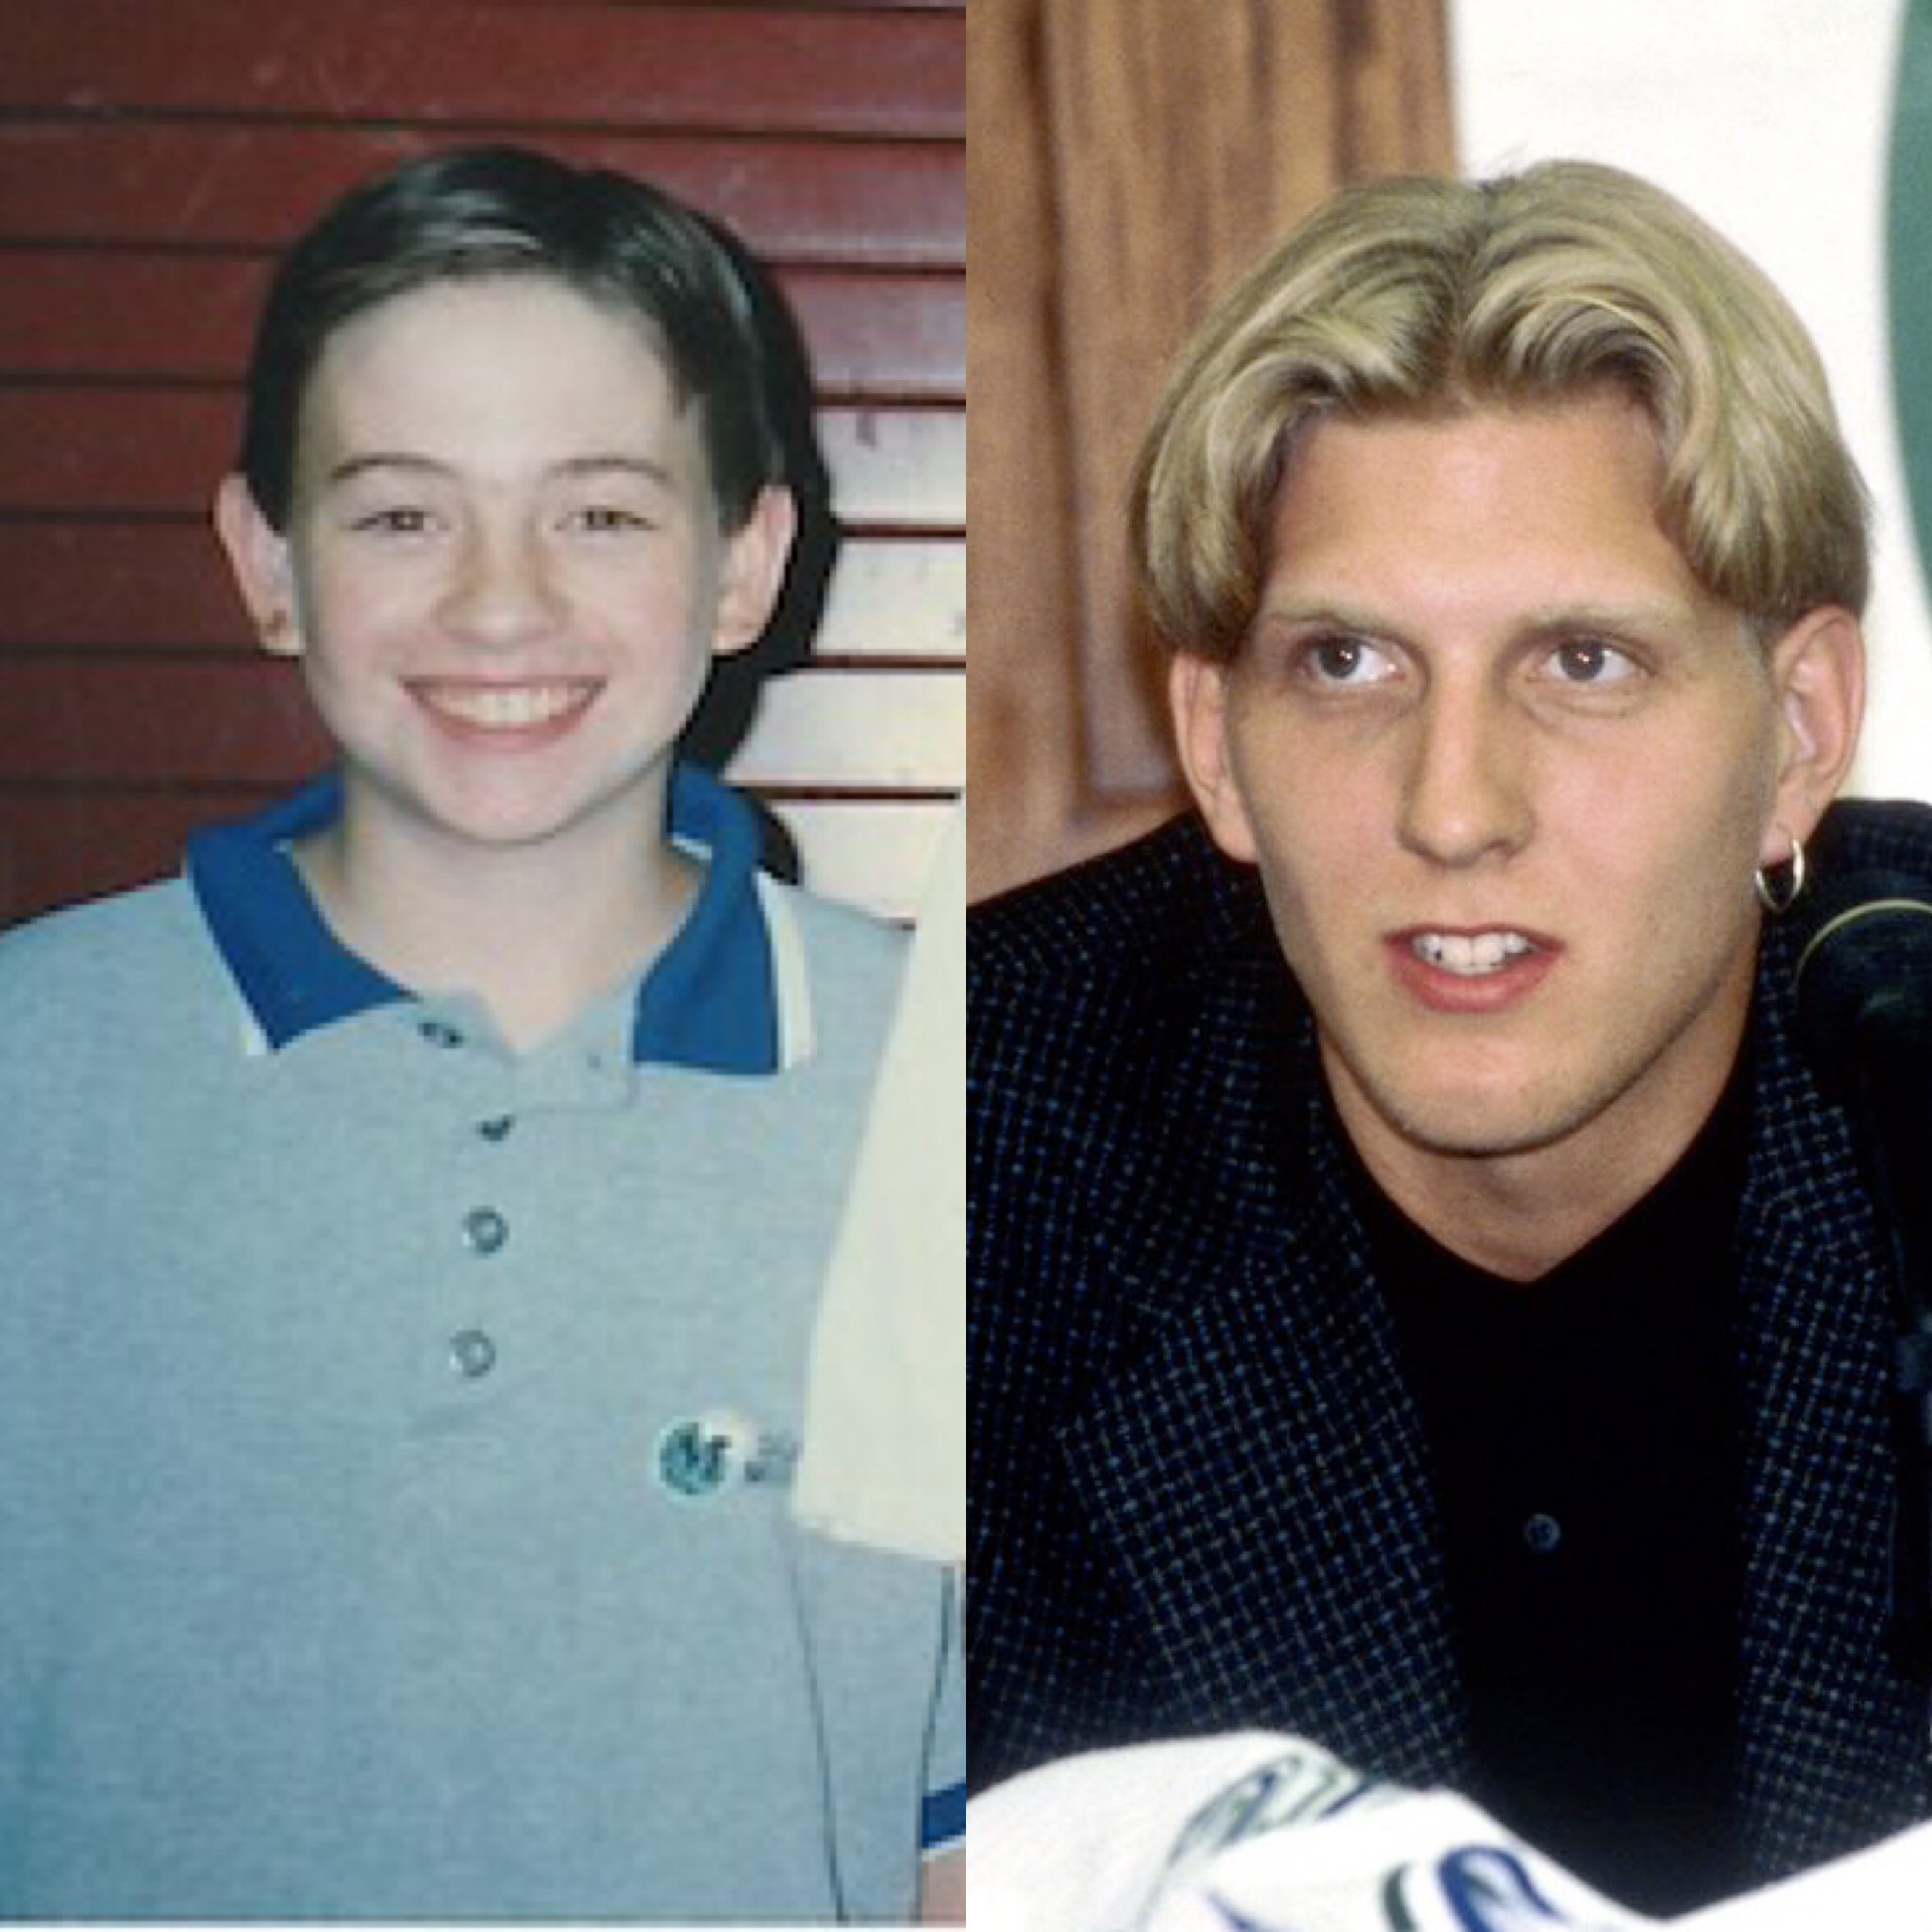 Me, at 15 (or maybe 14, it doesn't matter, the bad look has always been the same), and Dirk, at his introductory press conference.